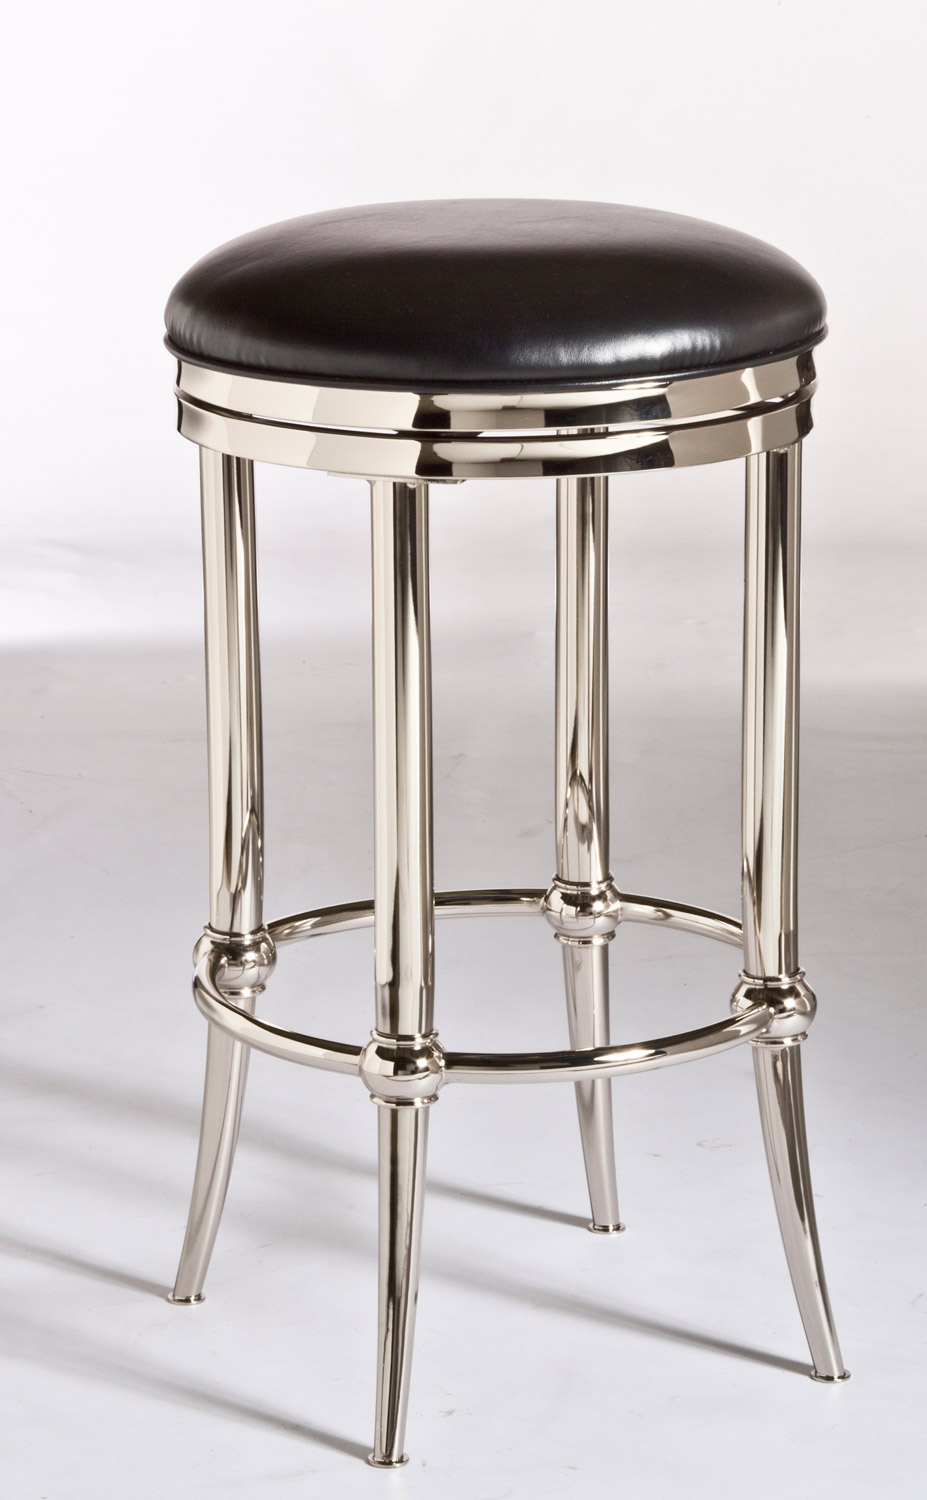 Hillsdale Cadman Backless Counter Stool - Black Vinyl/Shiny Nickel